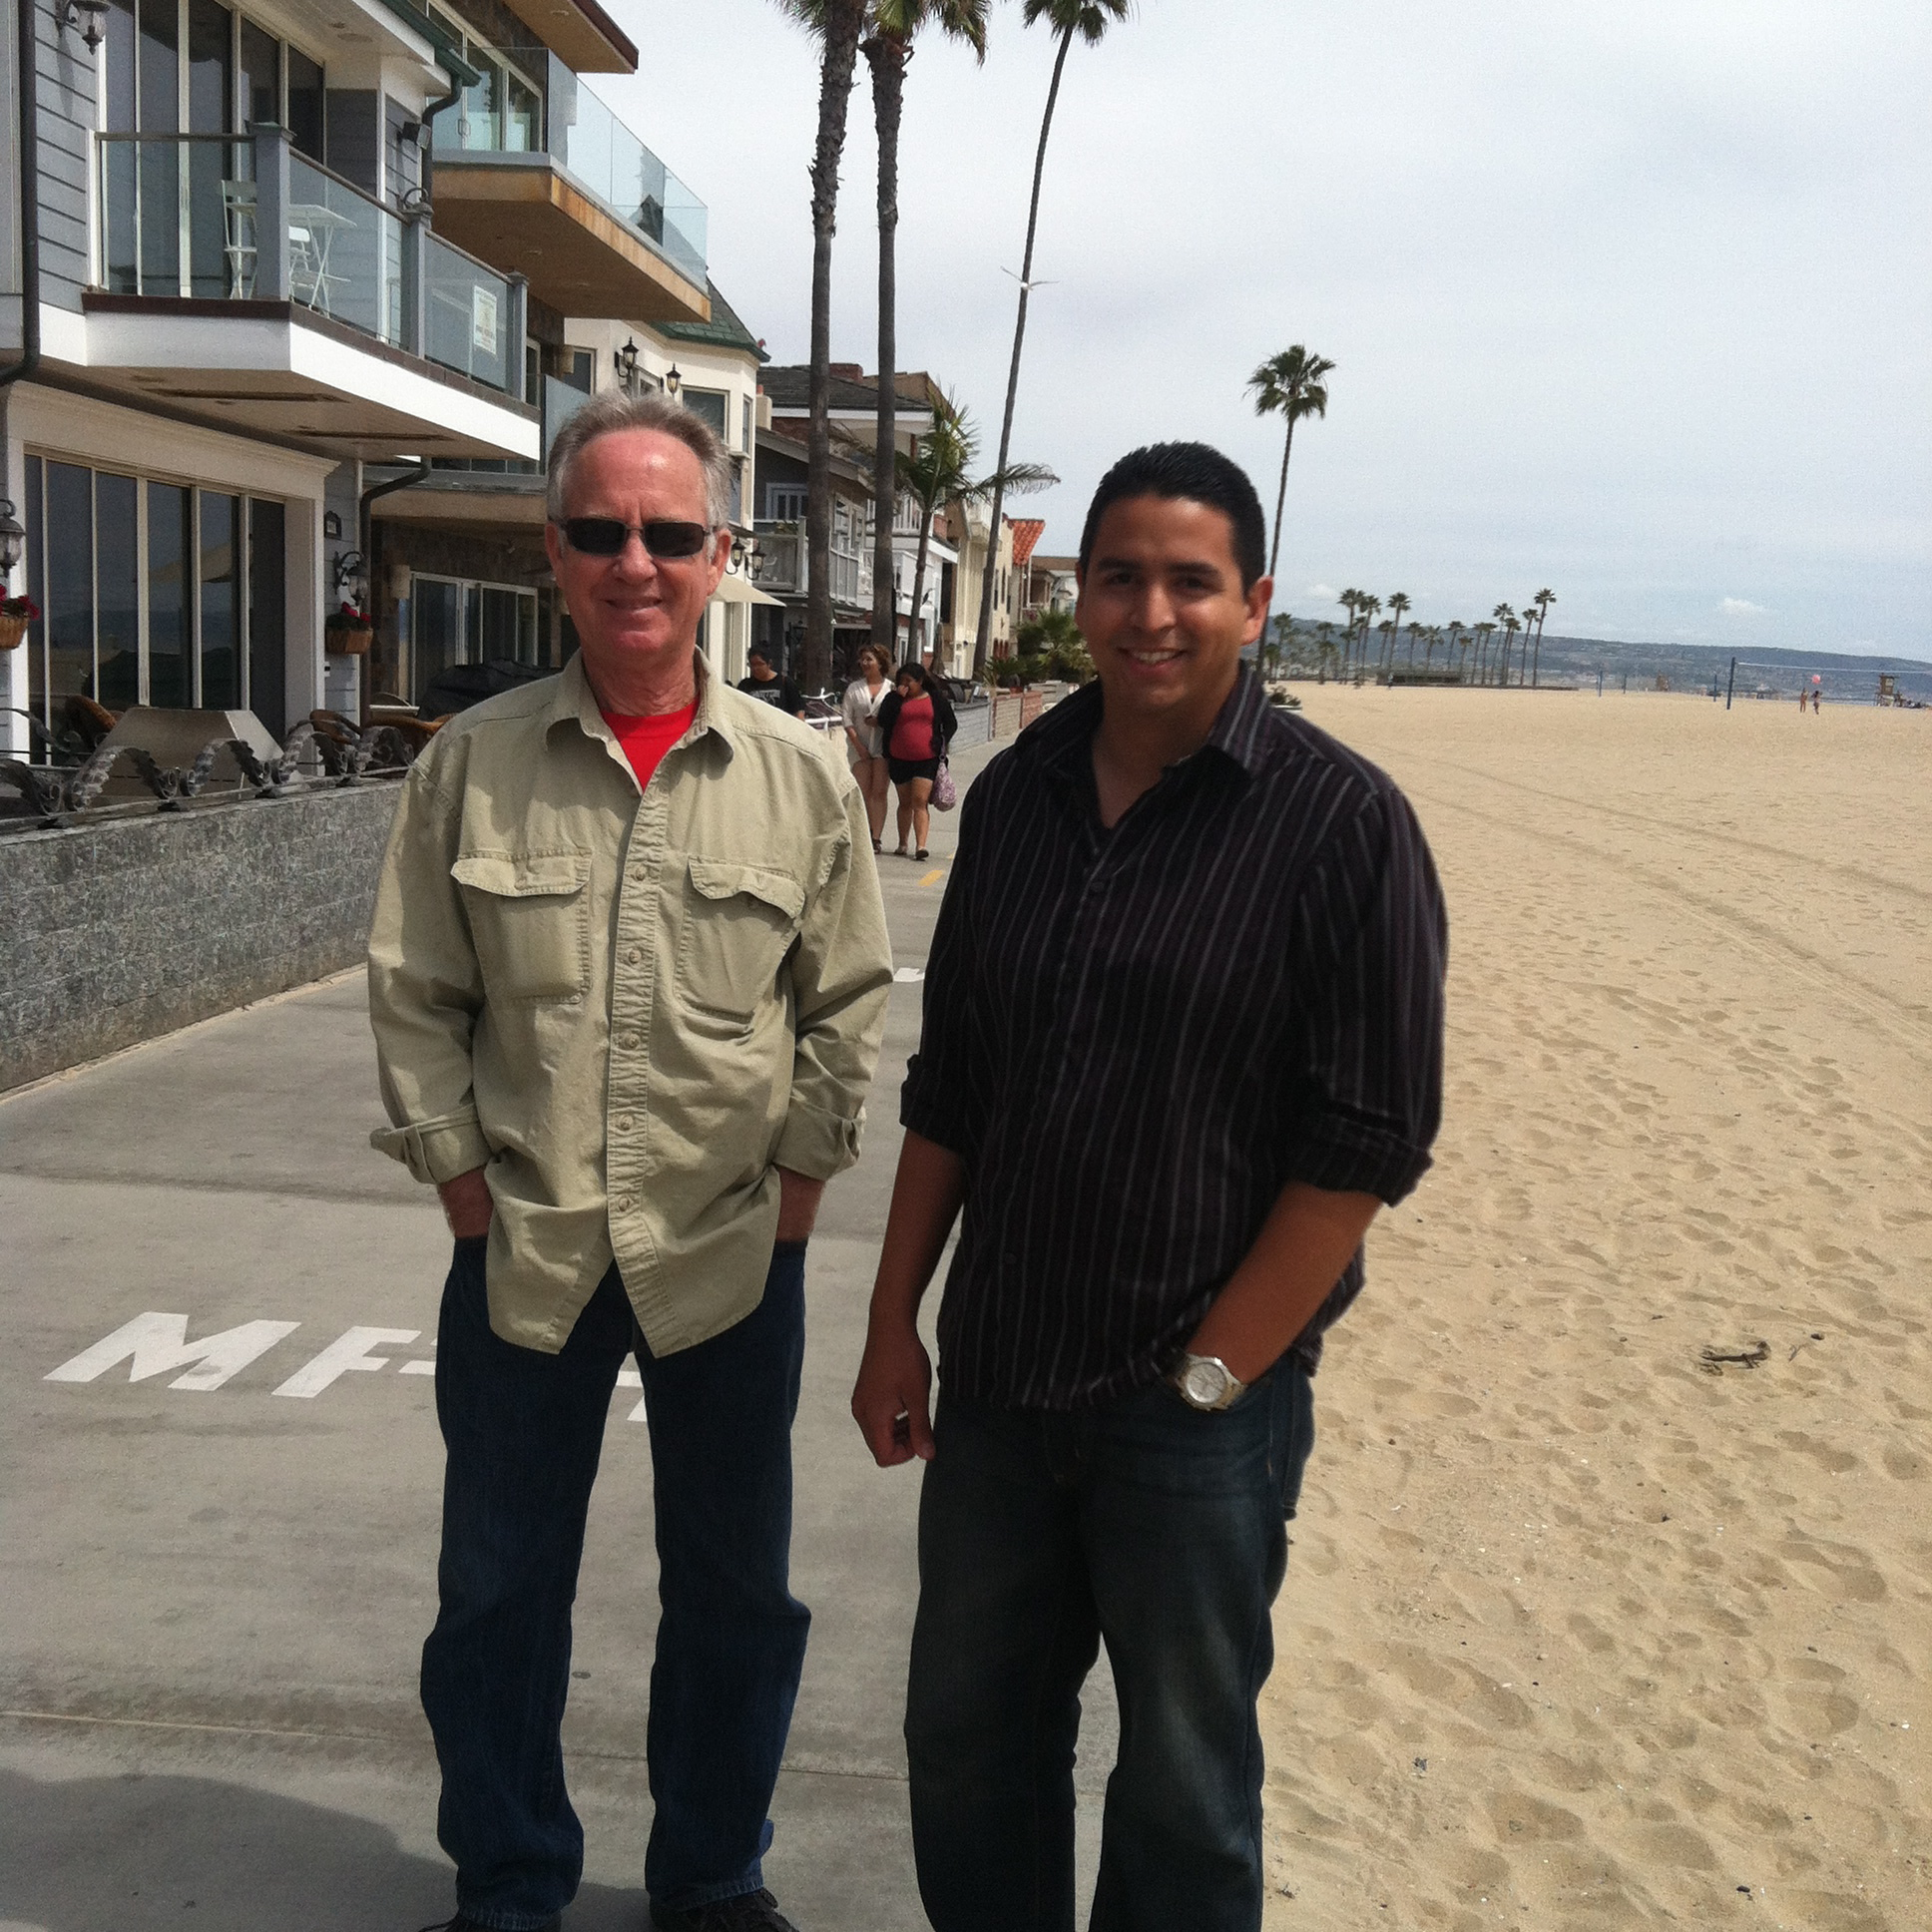 Four days later: Me (Mr. Cool) and son Daniel at Newport Beach, CA